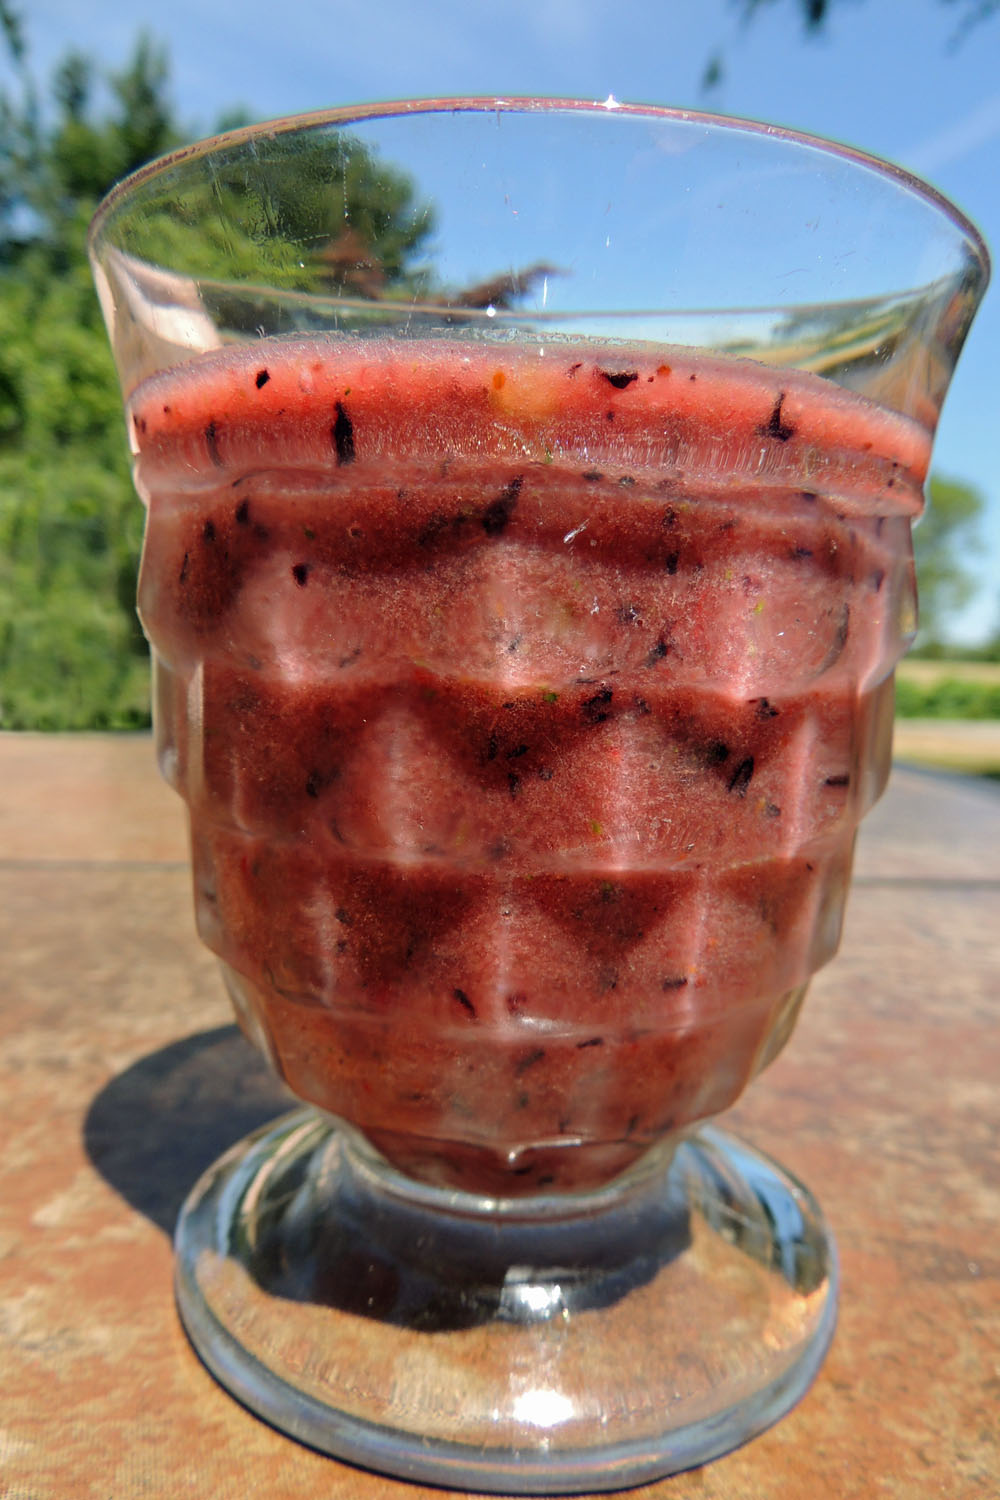 http://thedustylane.blogspot.com/2015/07/zucchini-smoothie.html